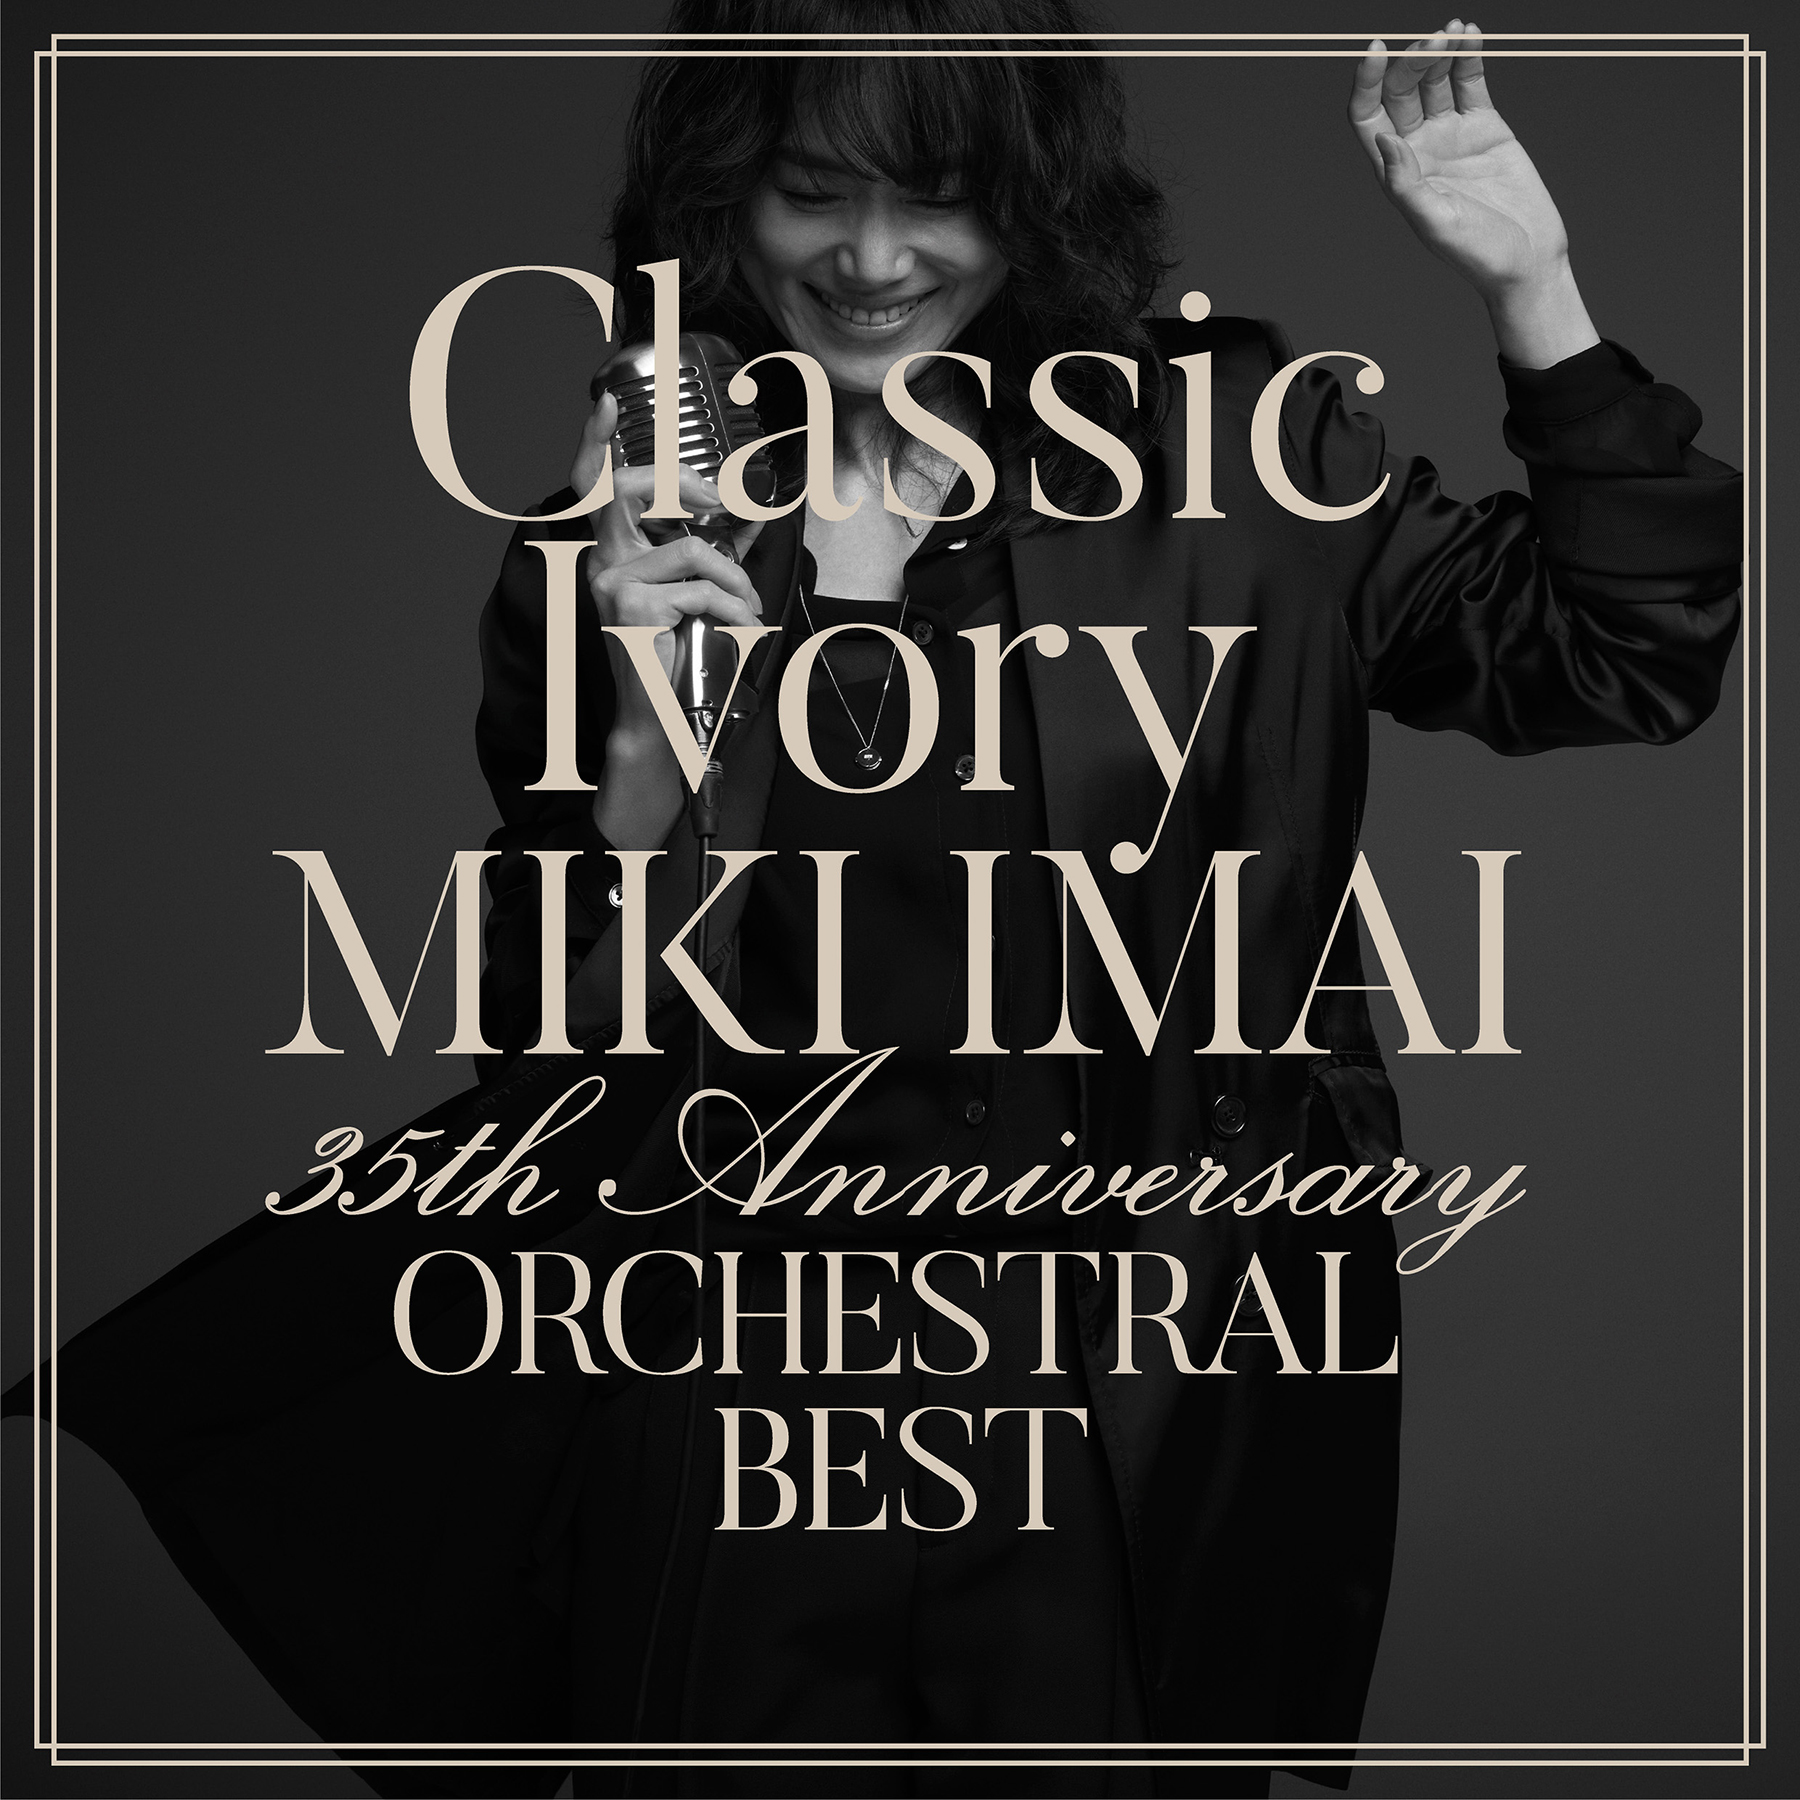 Classic Ivory 35th Anniversary ORCHESTRAL BEST